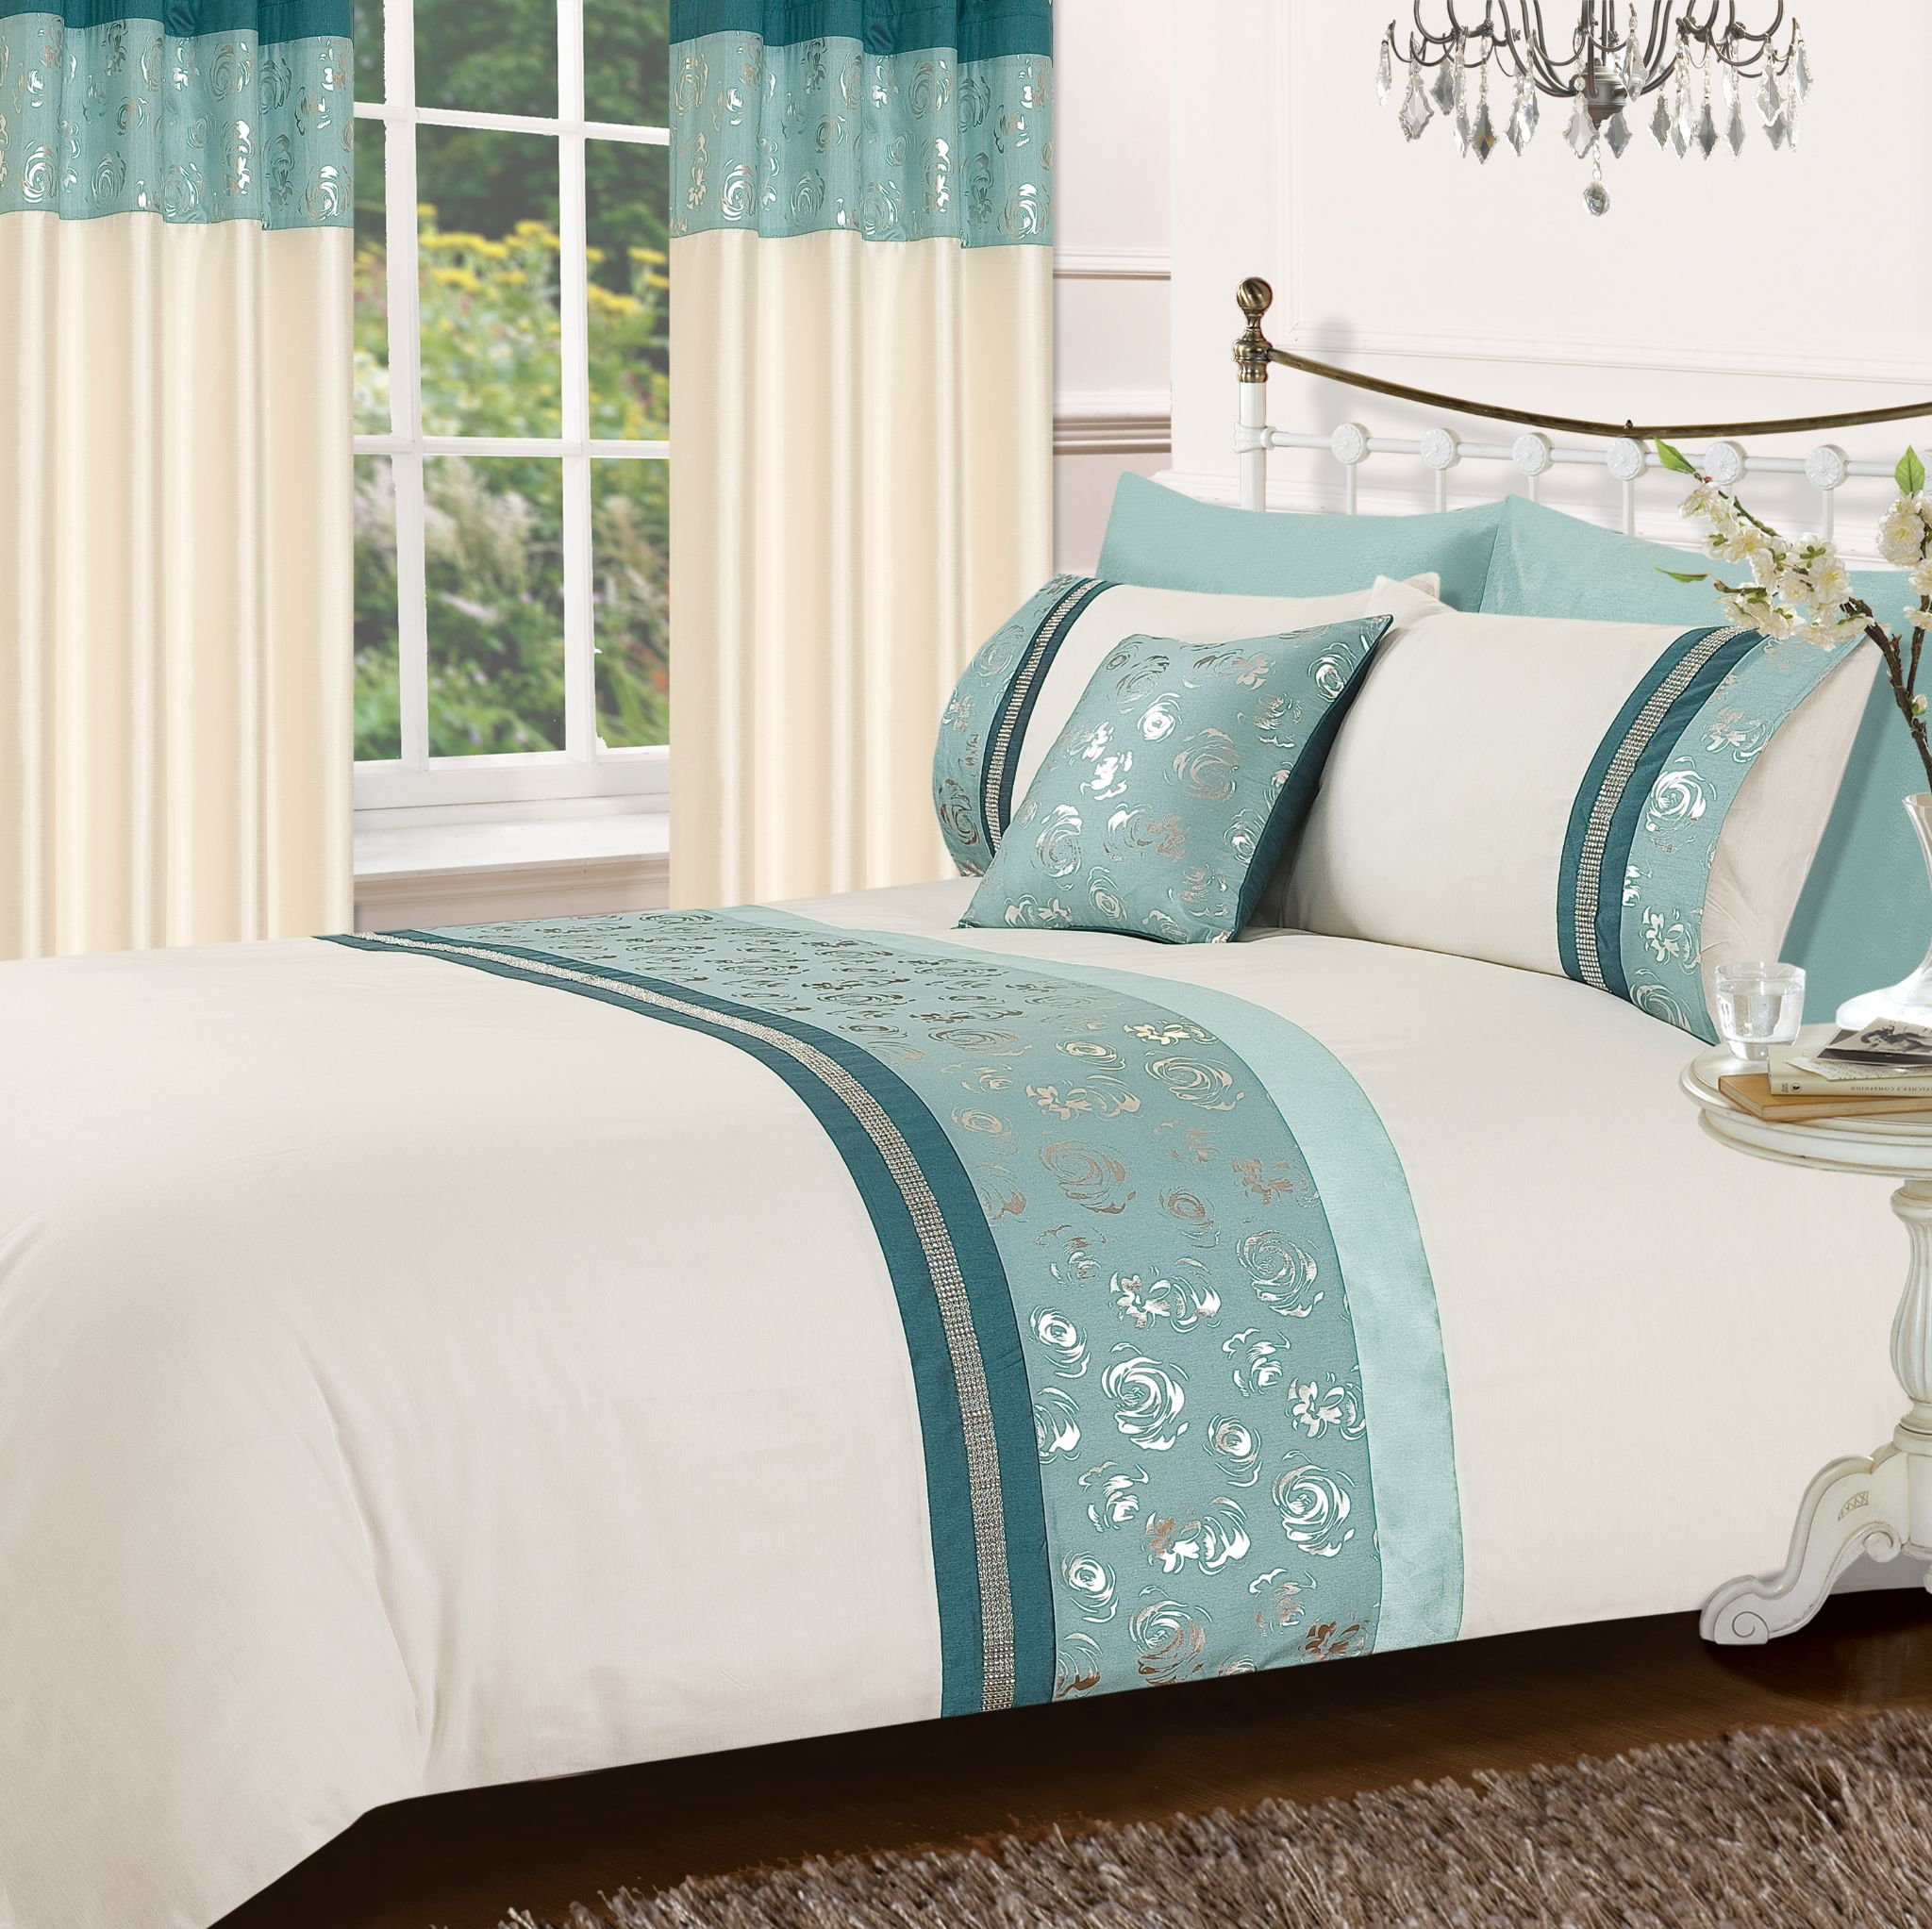 teal cream colour stylish matallic floral diamante duvet cover luxury beautiful glamour bedding. Black Bedroom Furniture Sets. Home Design Ideas